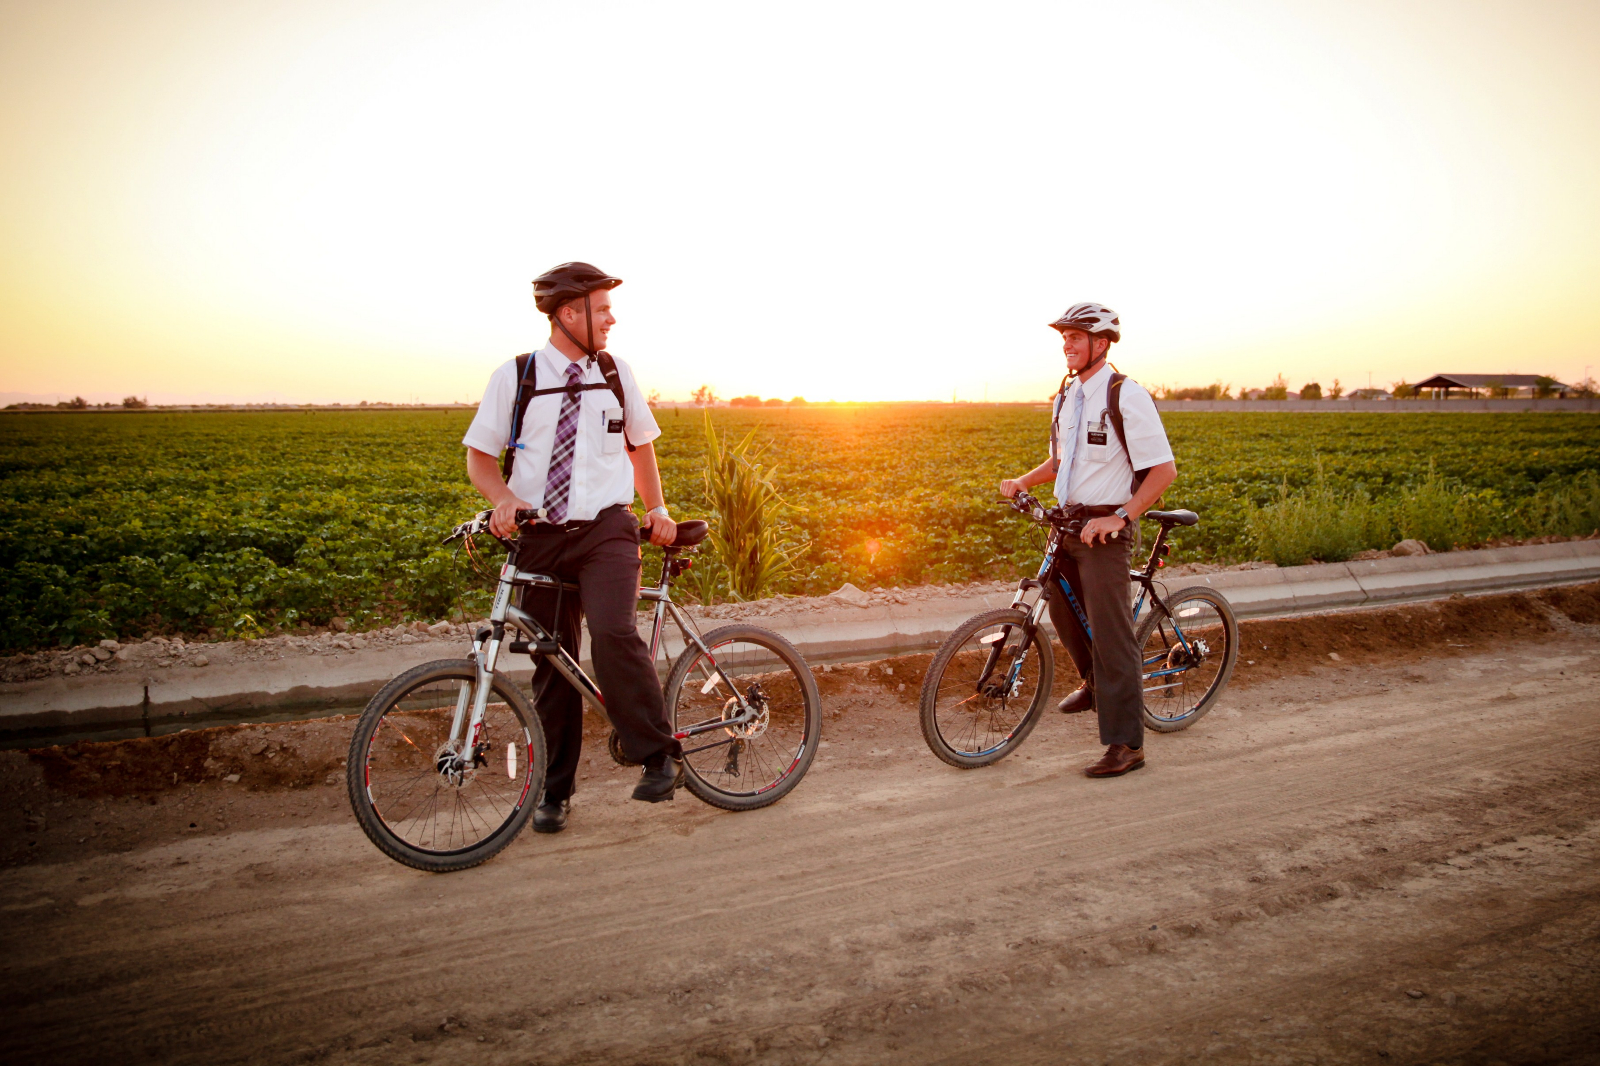 Two missionaries of The Church of Jesus Christ of Latter-day Saints ride their bicycles.